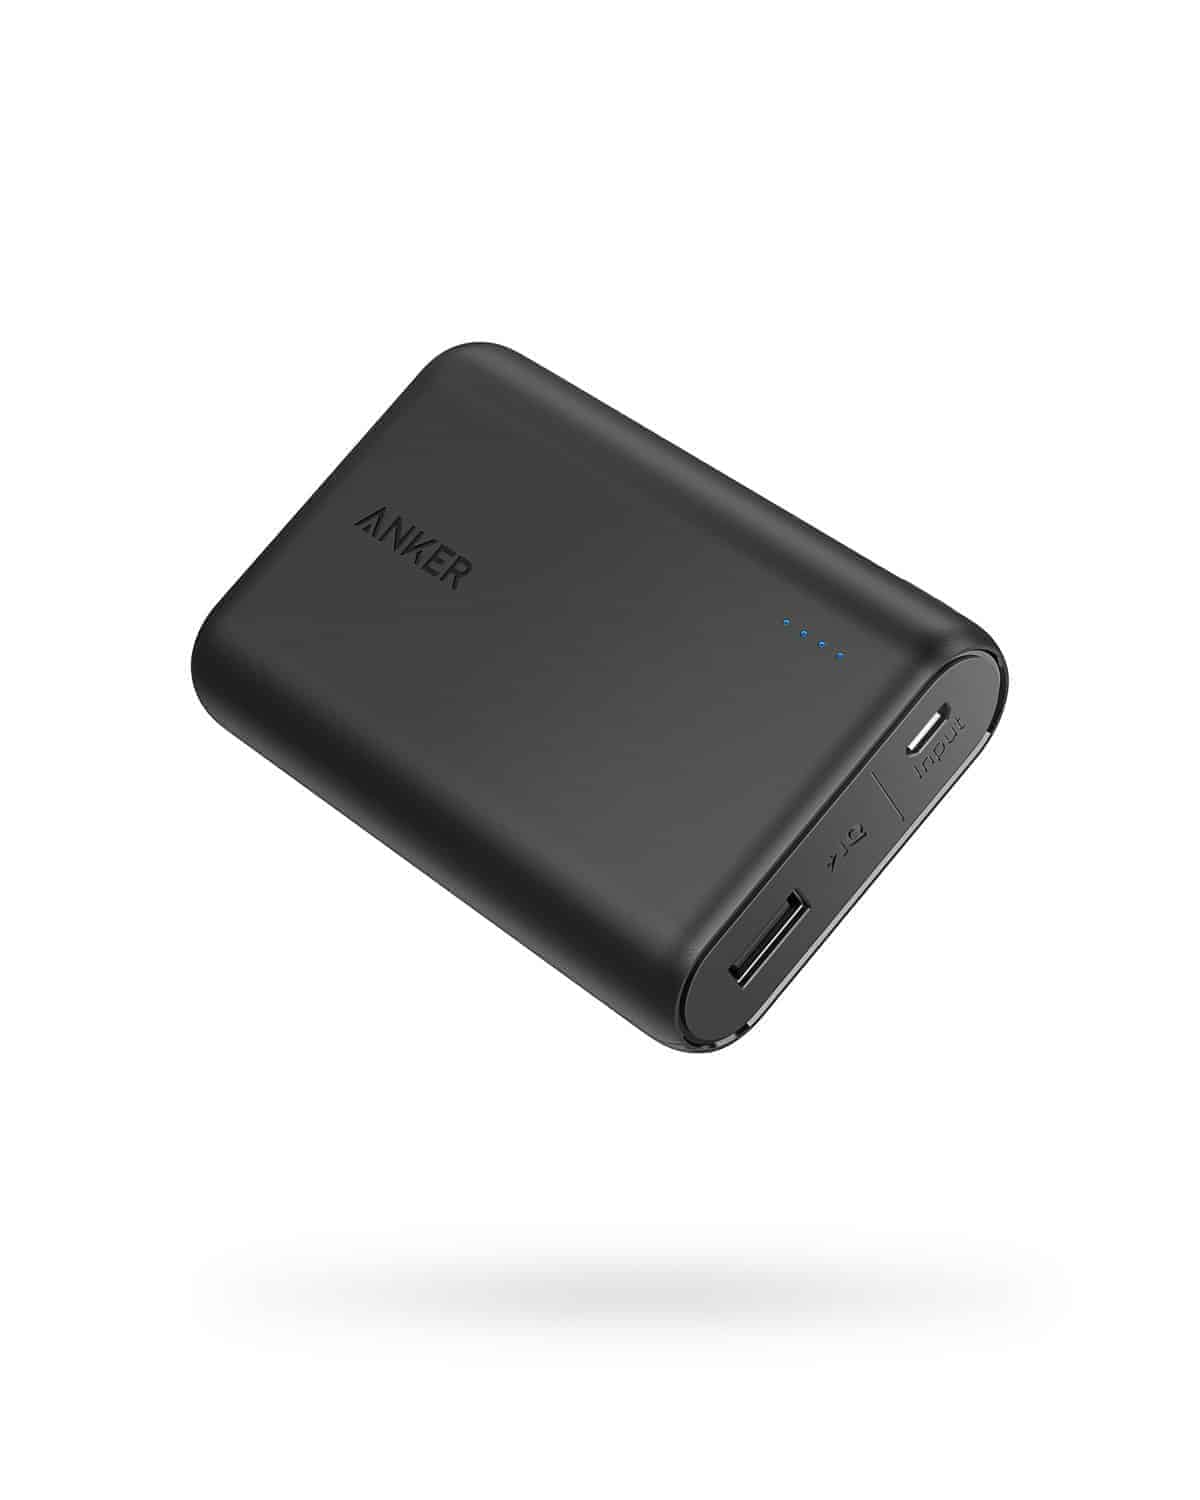 anker powercore 10000 charging bank portable